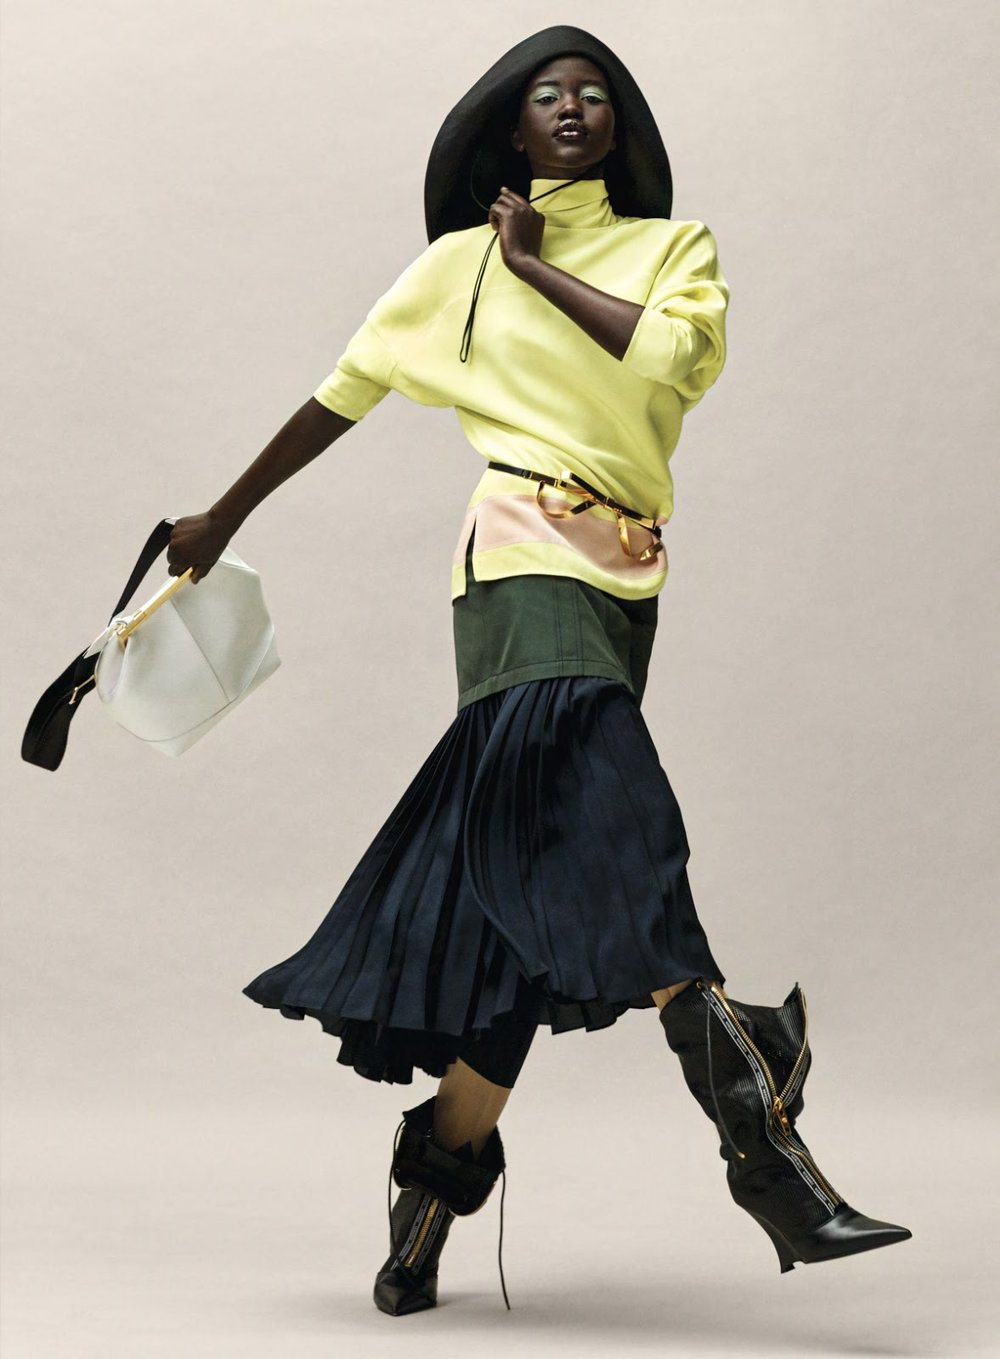 Adut Akech by Josh Olins for Vogue US January 2019 (3).jpg